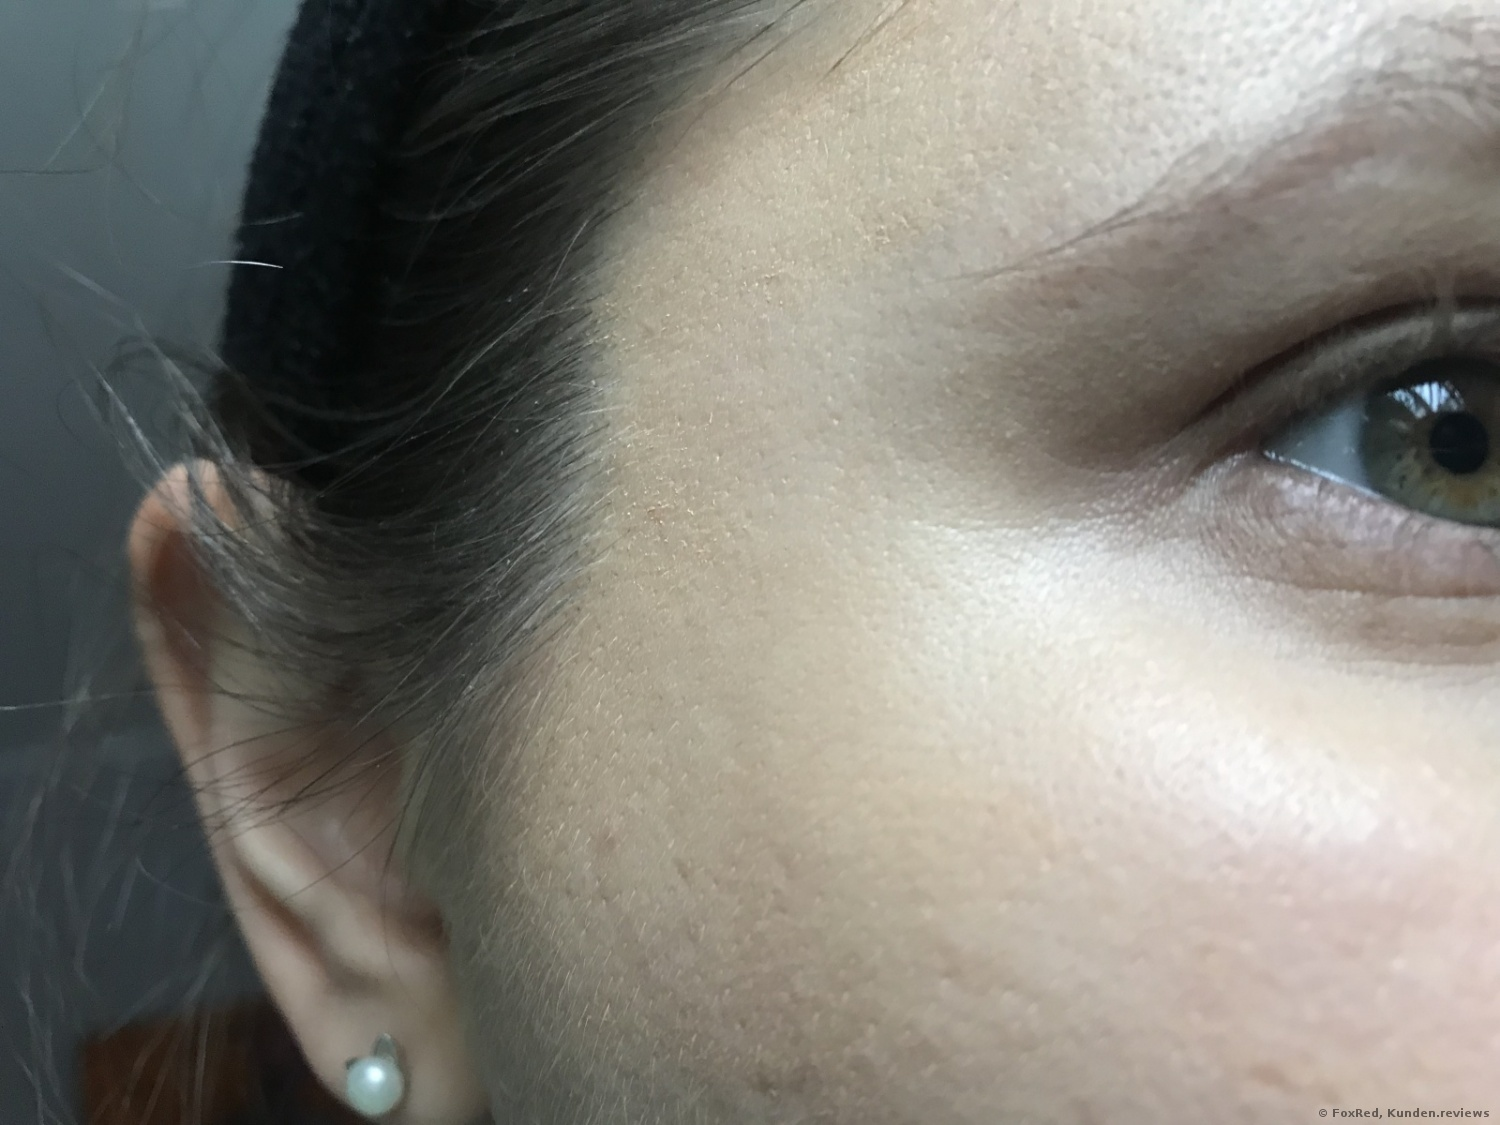 MARC JACOBS Shameless Youthful-Look 24-Hour Foundation